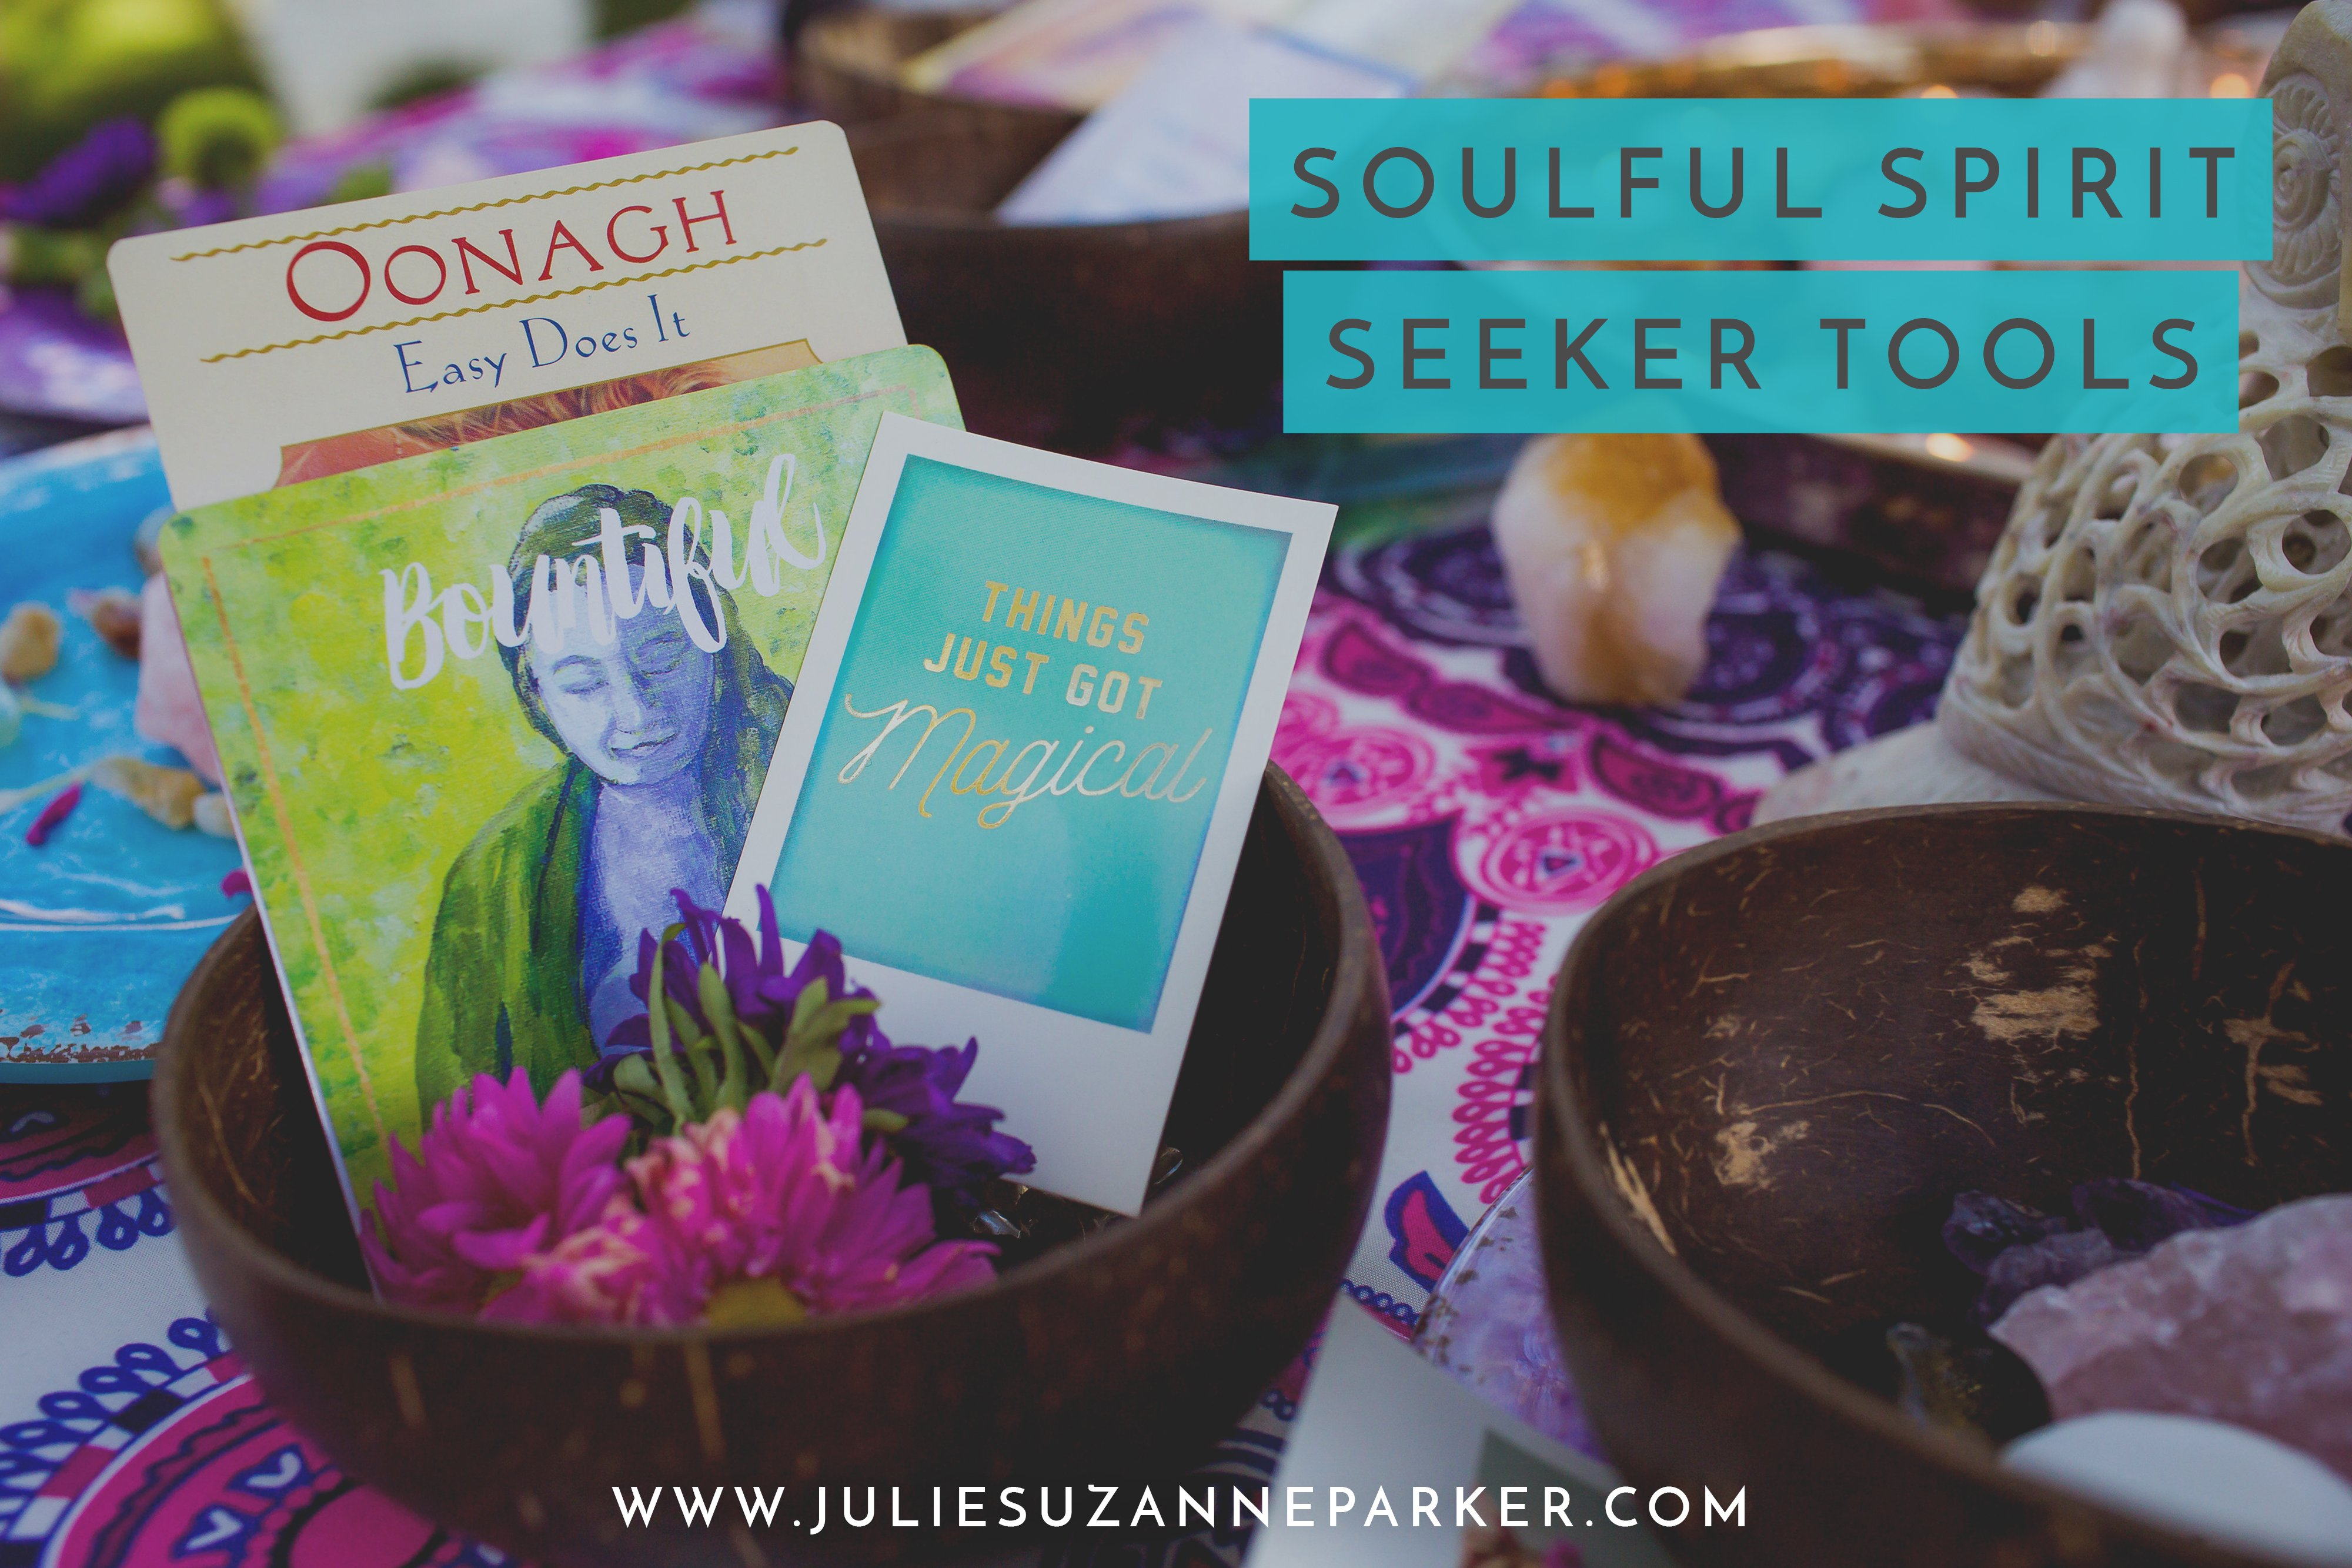 Soulful Spirit Seeker Tools (And a Goddess Mist Giveaway